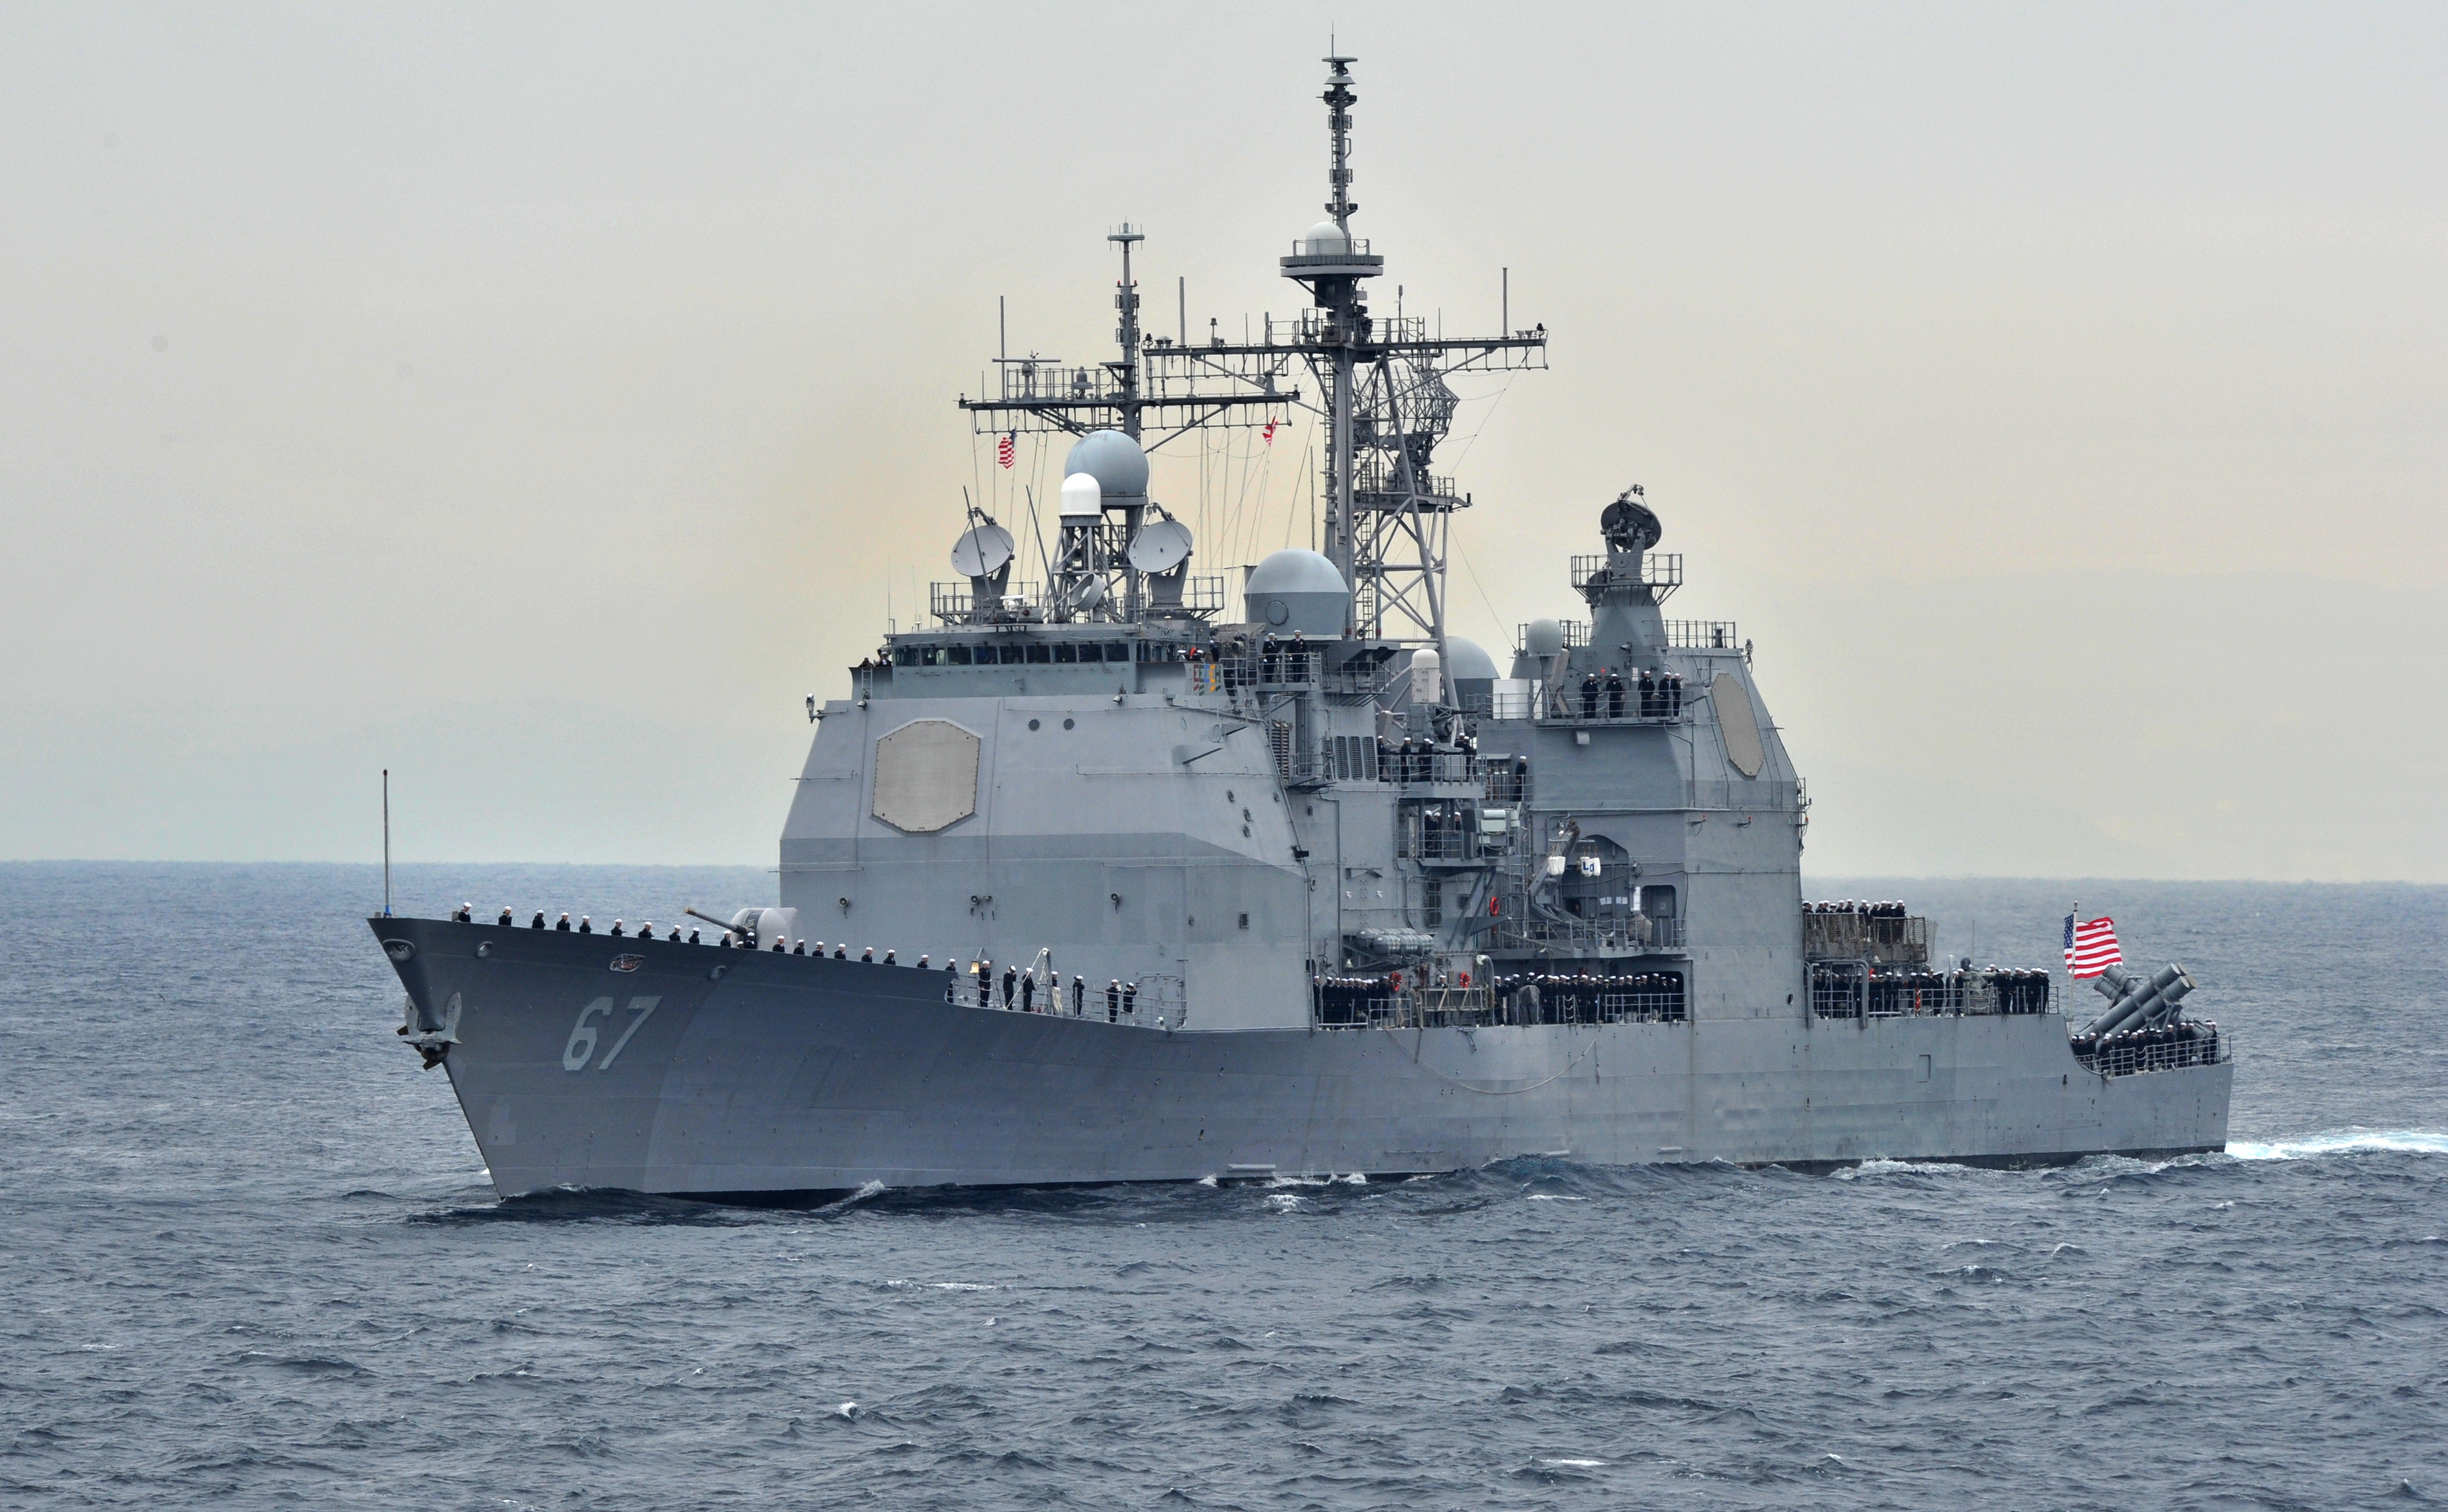 U.S. warship transits Taiwan Strait less than week after election